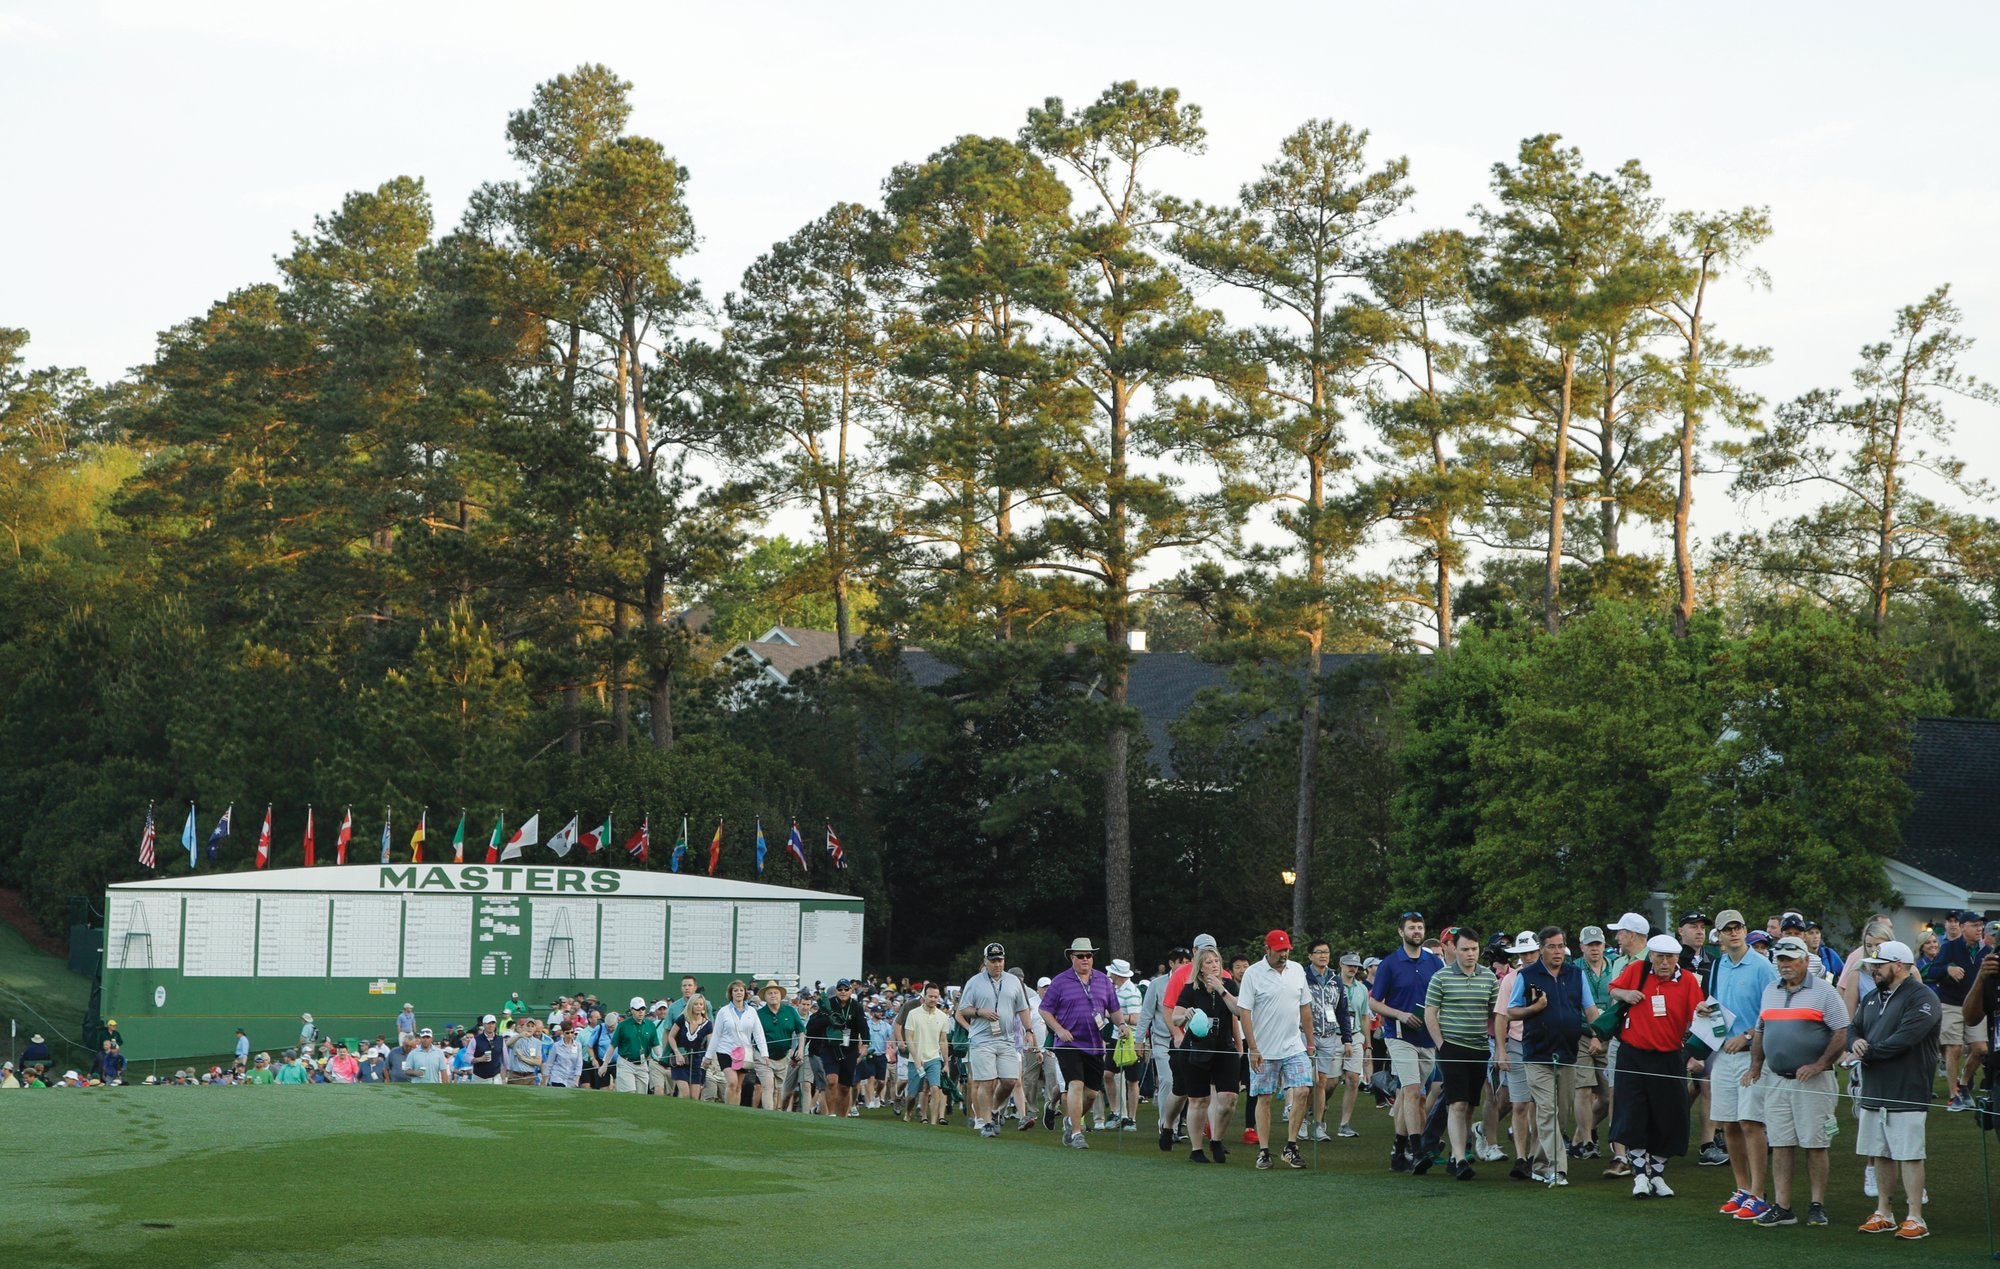 The Masters, the major known as much for the roars of the crowd as the raw beauty of Augusta National, will be on mute this year. The club decided Wednesday, Aug. 12, 2020, there will be no spectators.